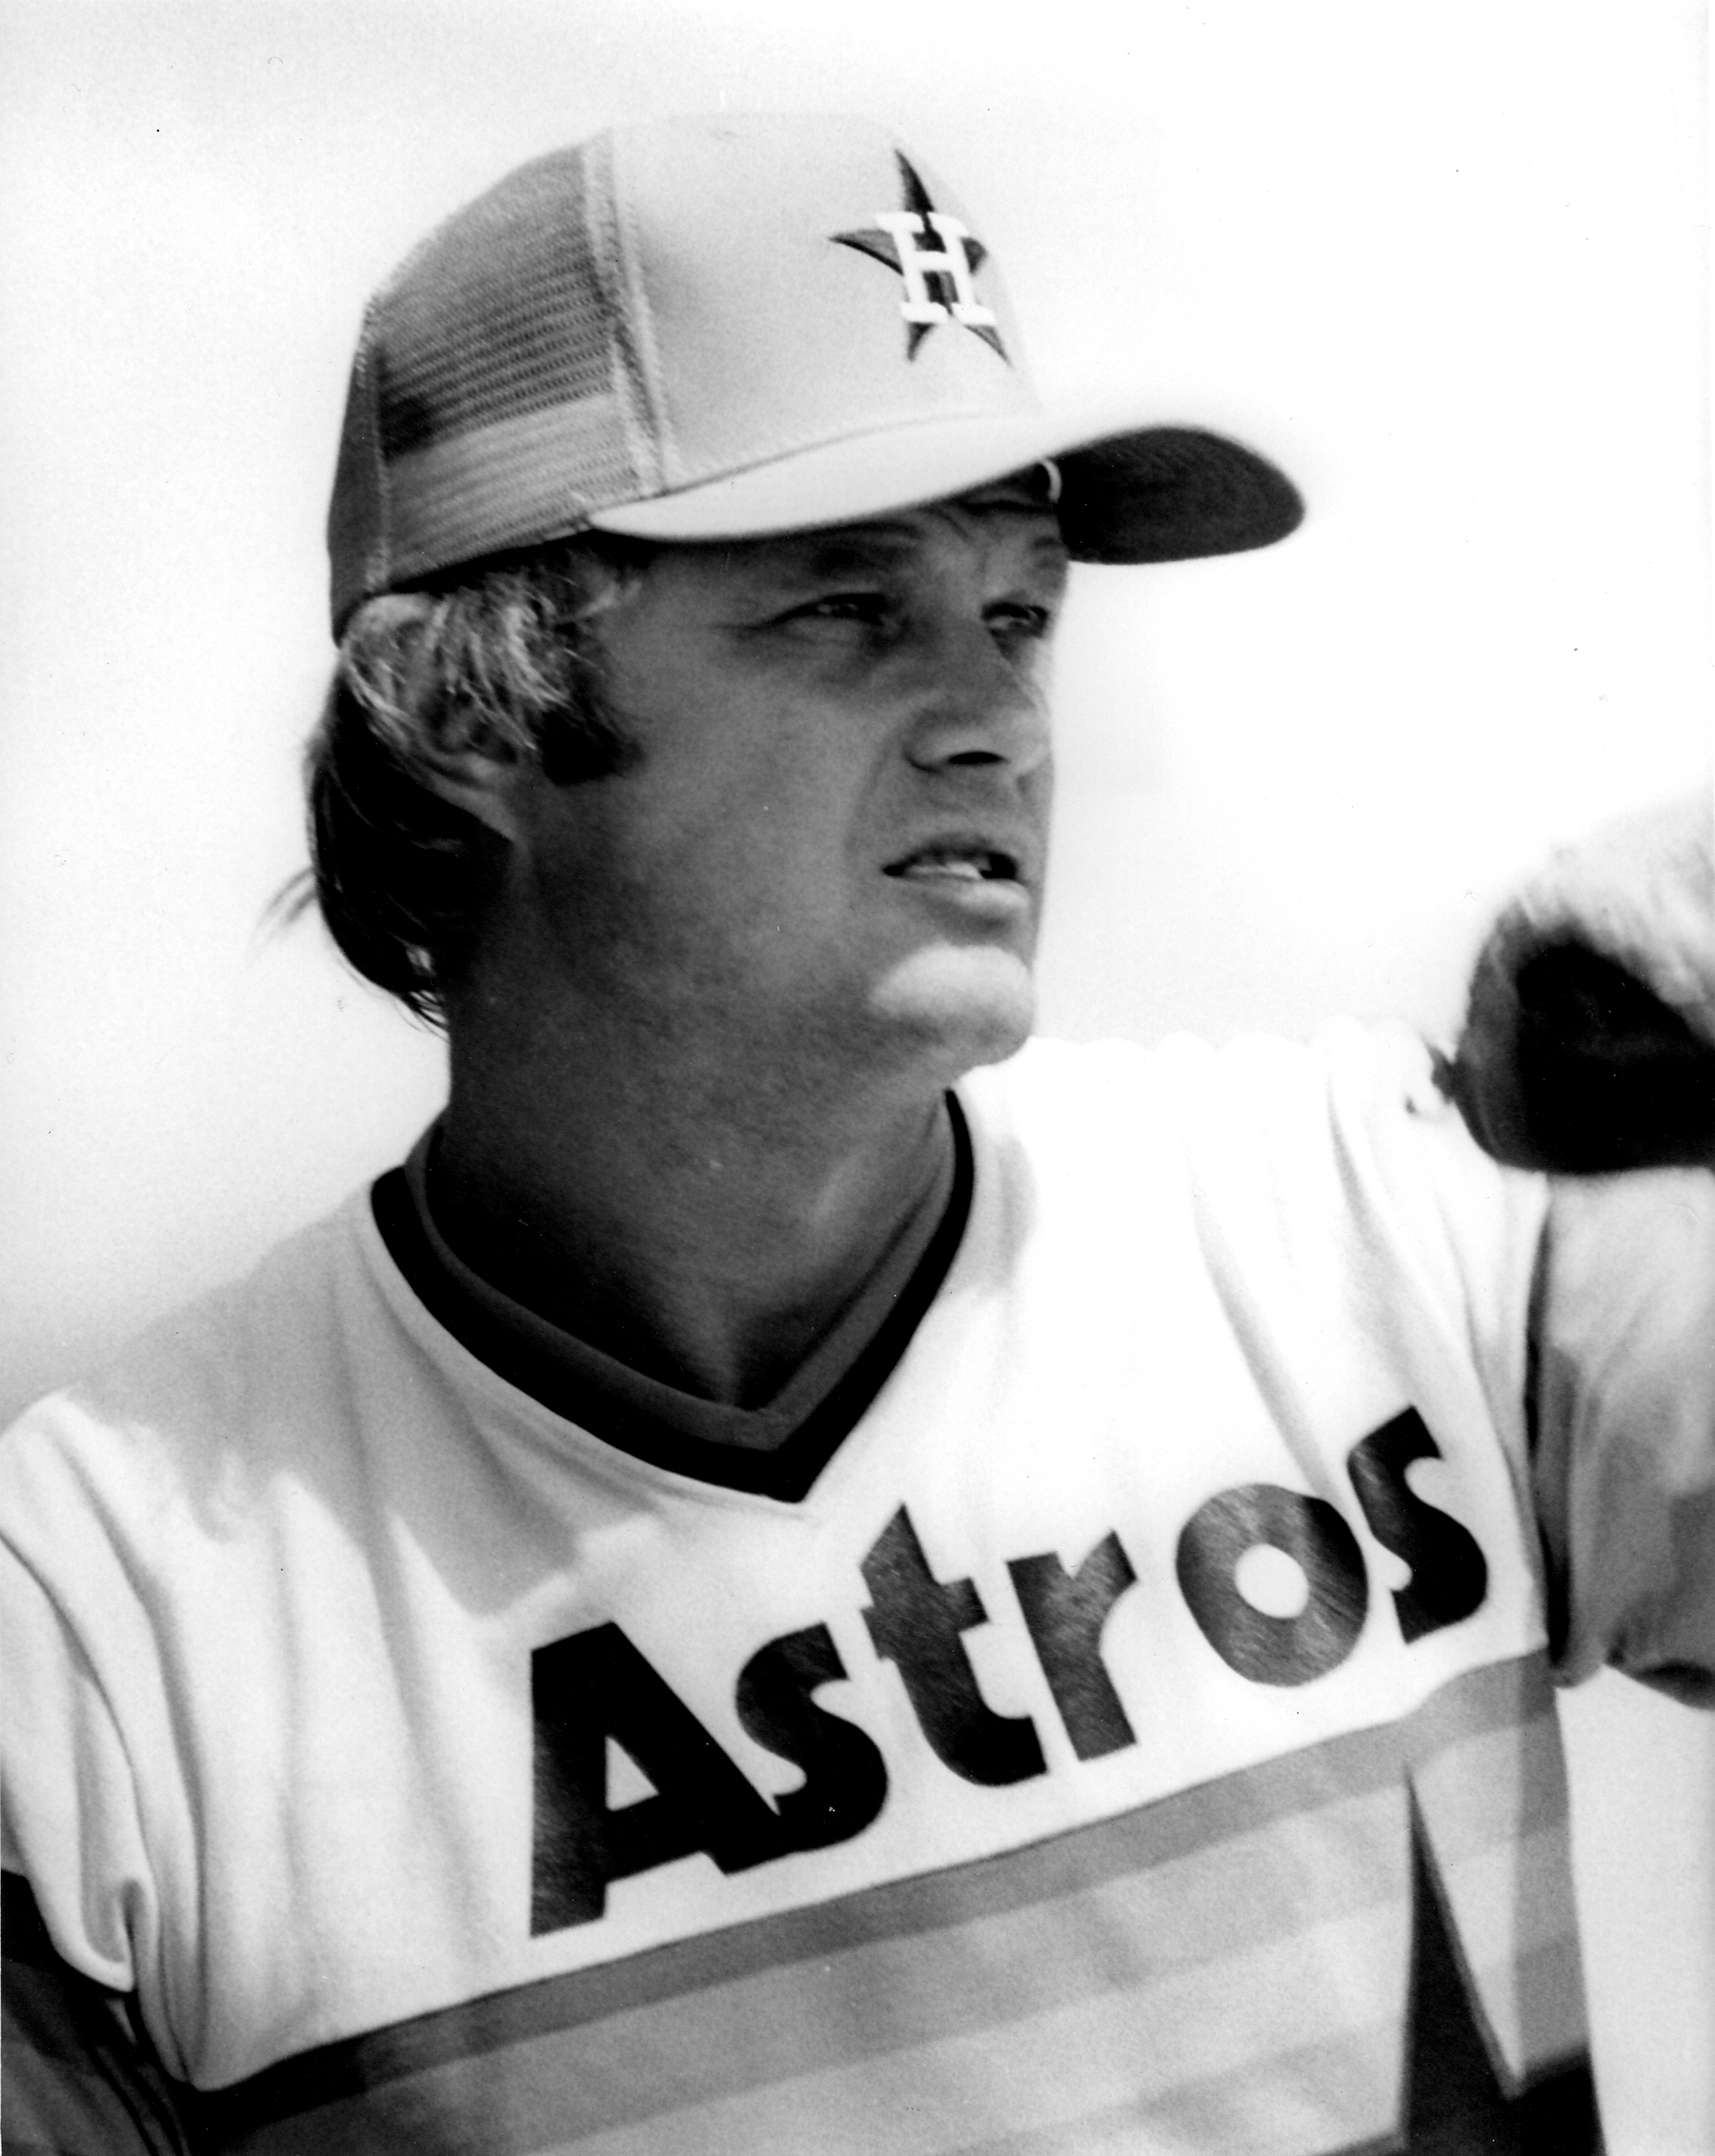 http://www.joeniekrofoundation.com/uncategorized/three-years-ago-today/attachment/niekro-closeup/